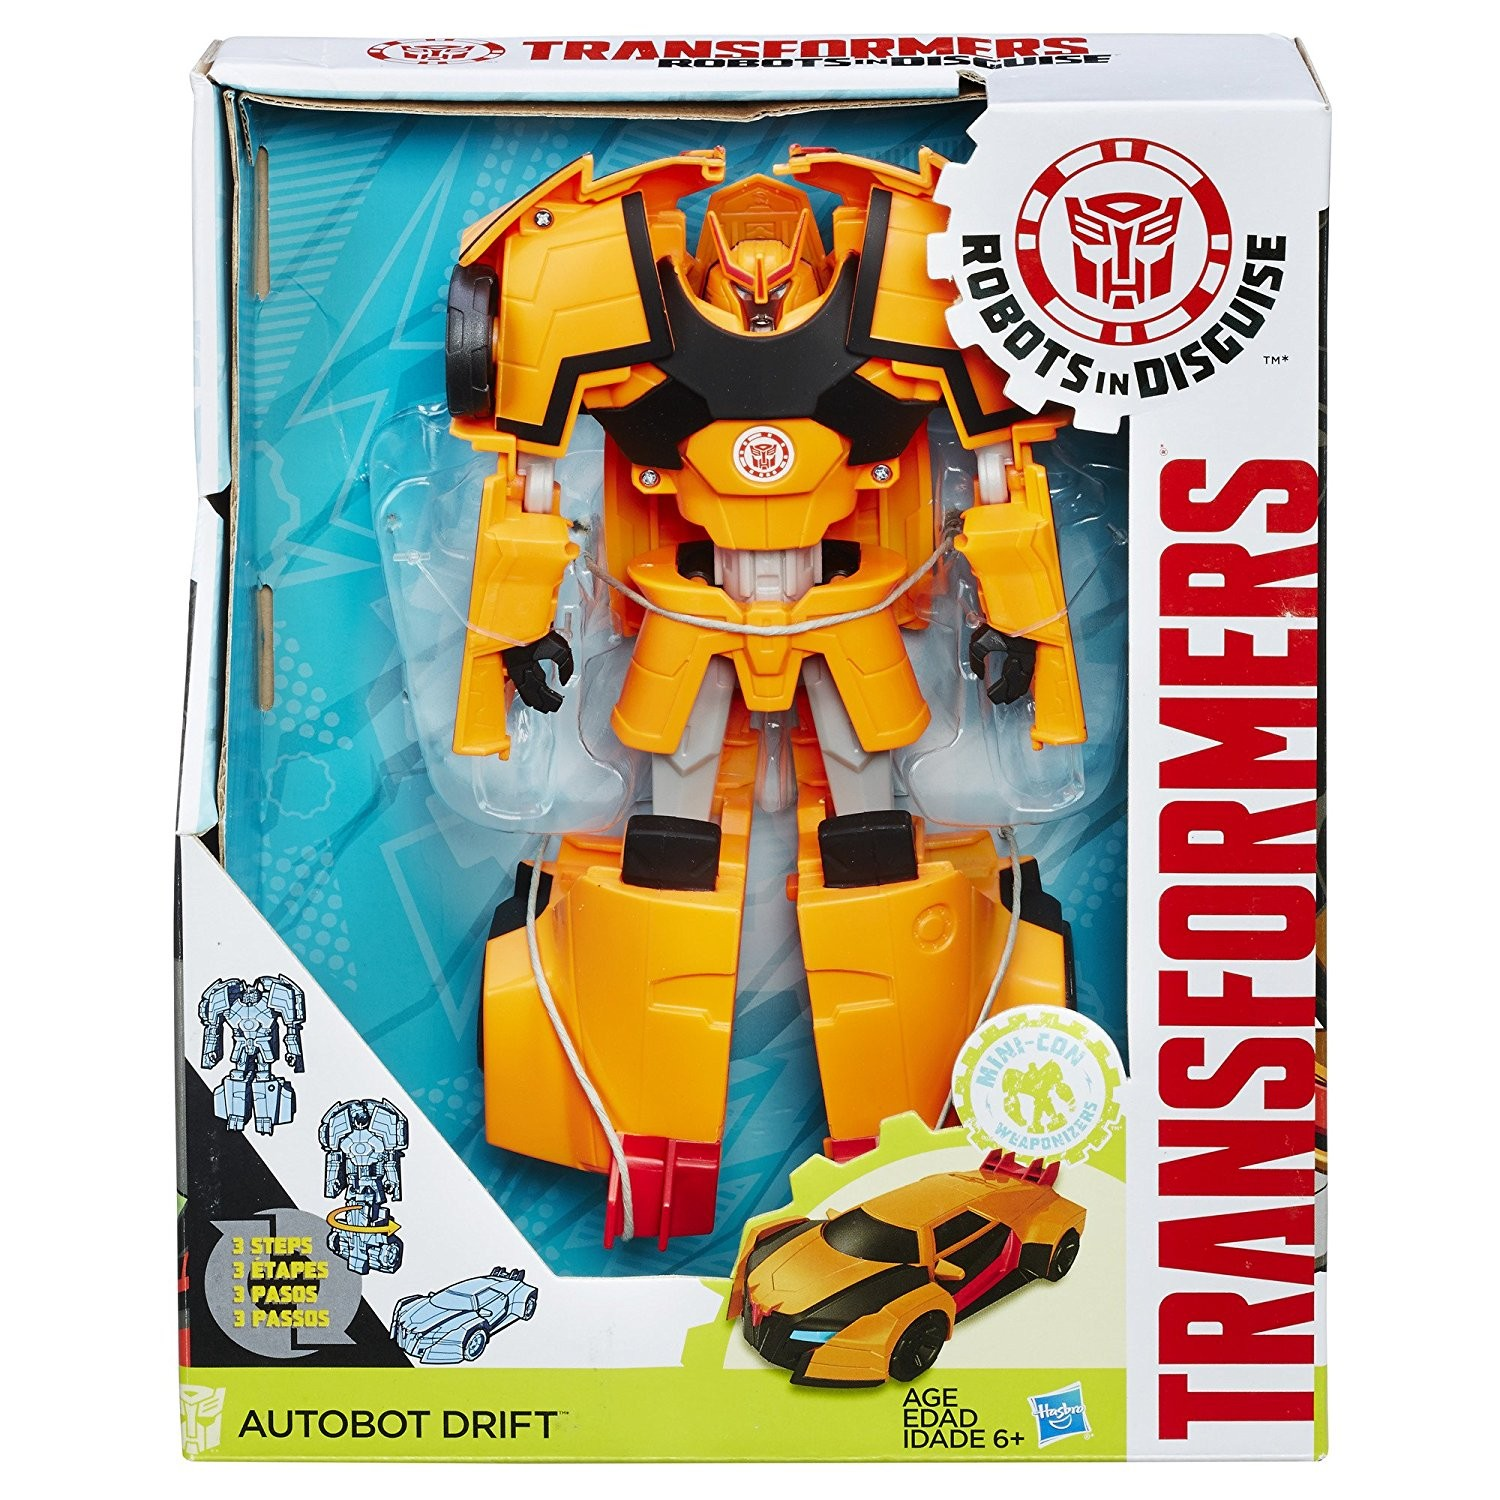 Transformers News: New Listings, Availability and Images for Robots in Disguise 3-Steps and Wave 2 Weaponizer Mini-cons